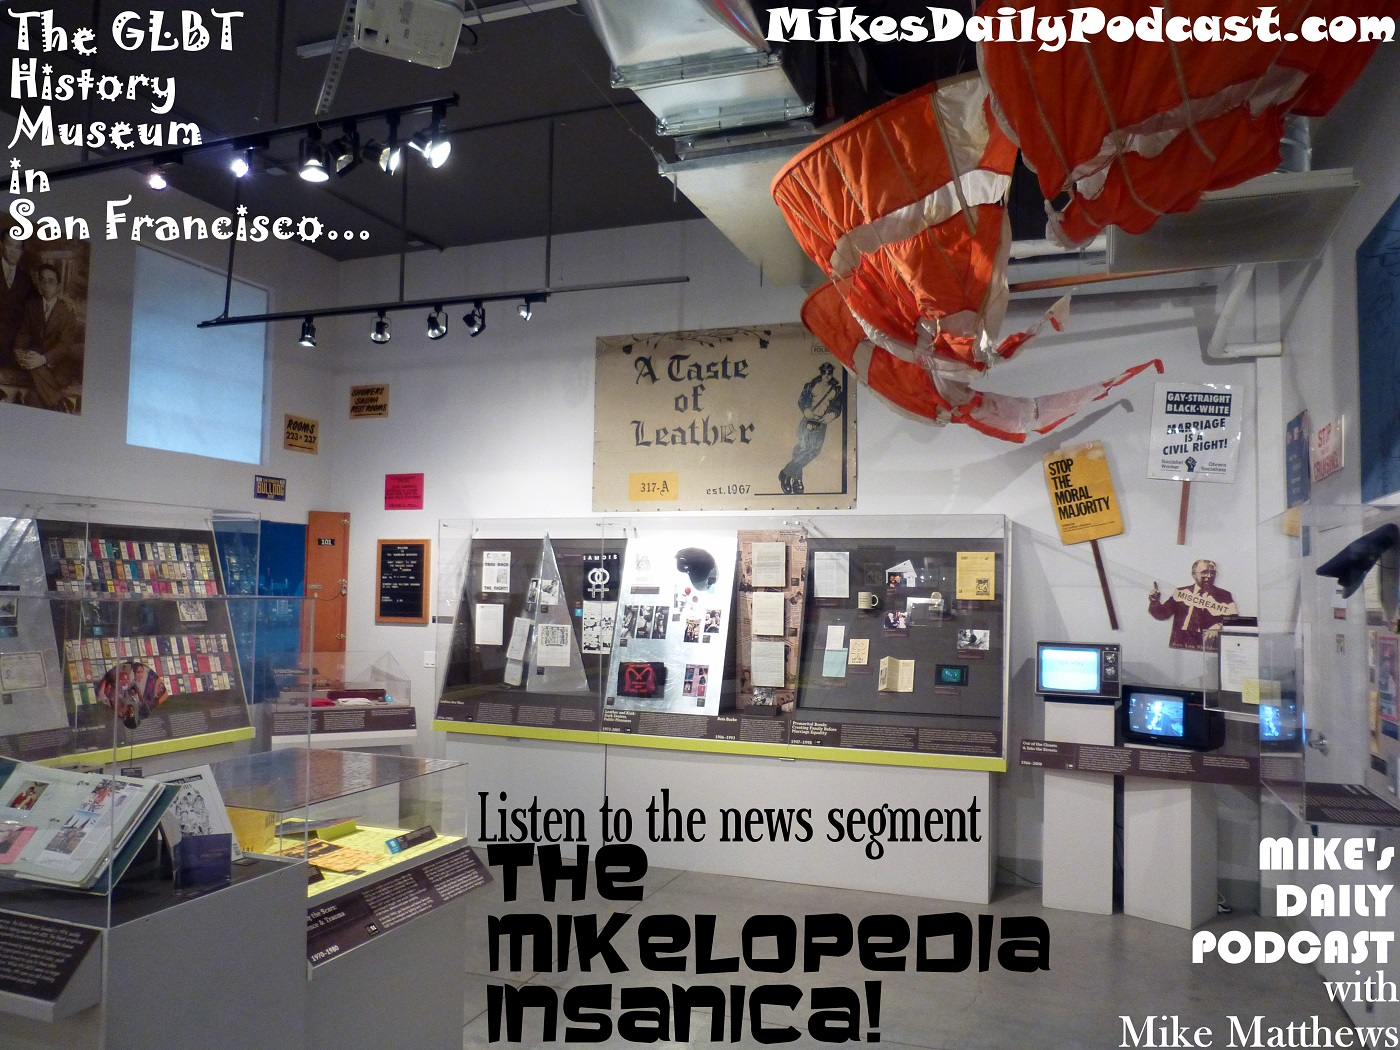 MIKEs DAILY PODCAST 932 The GLBT History Museum San Francisco